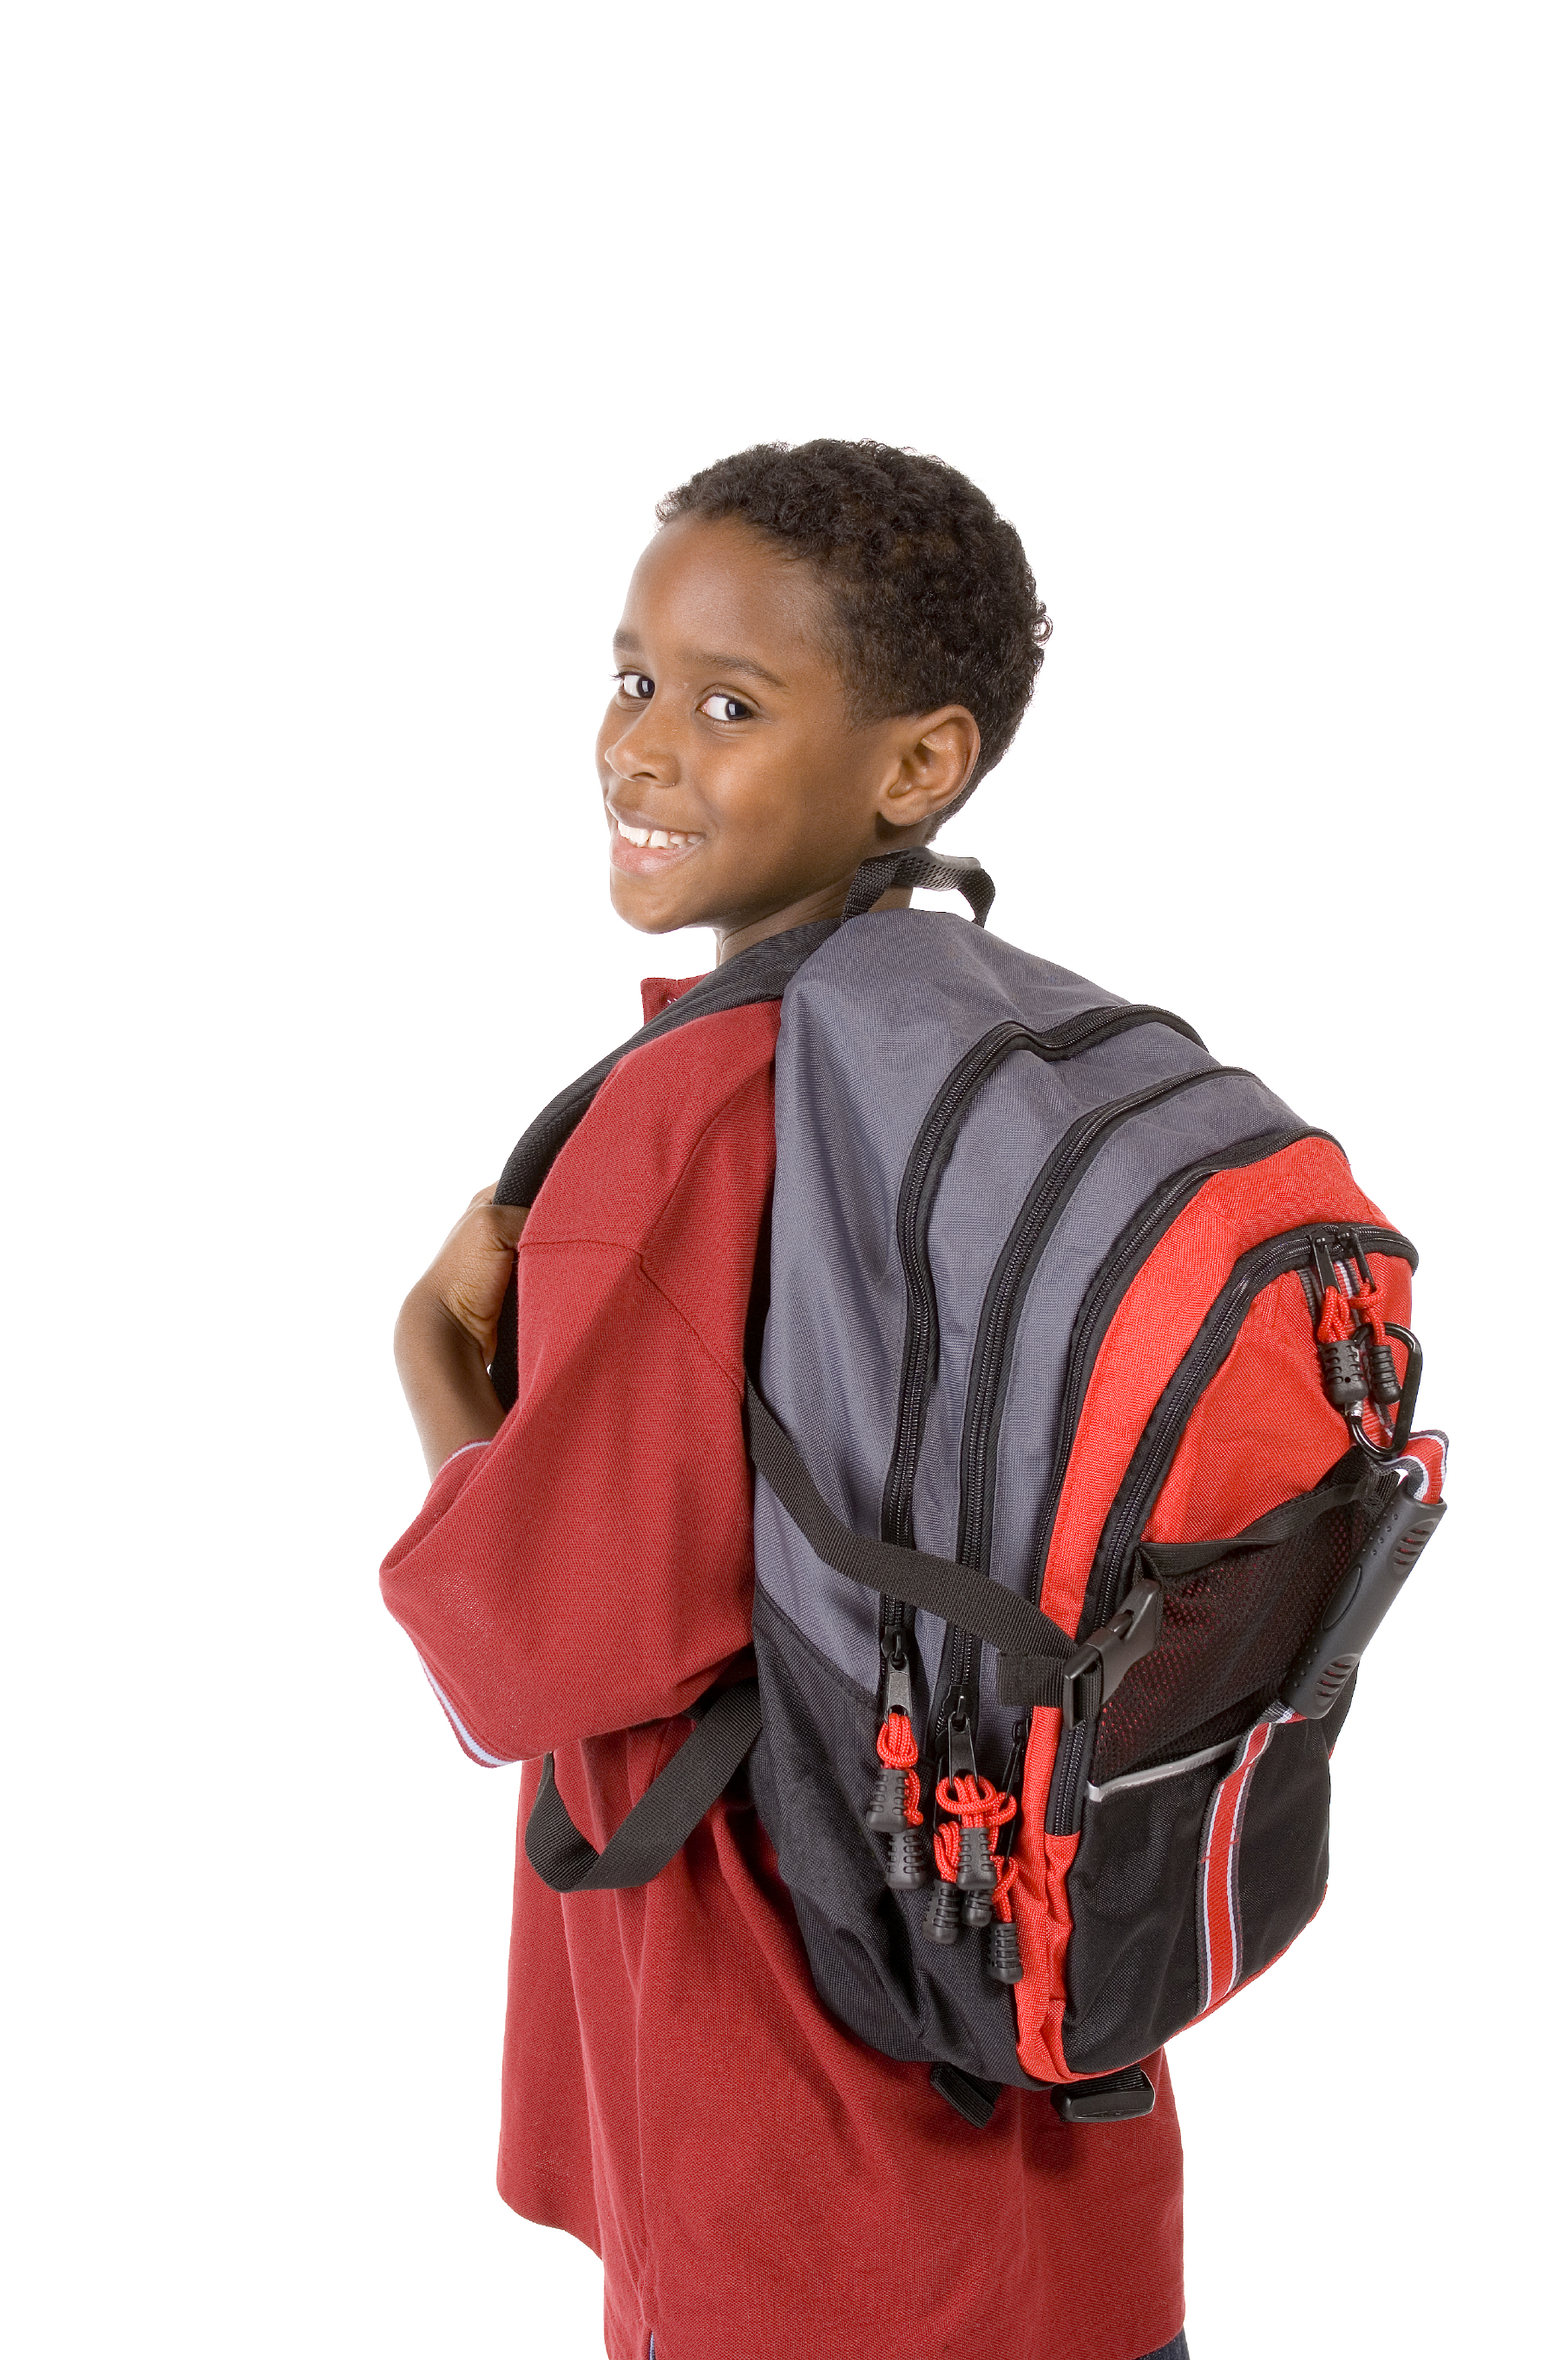 5124ccff37a7 Kid With Backpack Png & Free Kid With Backpack.png Transparent ...